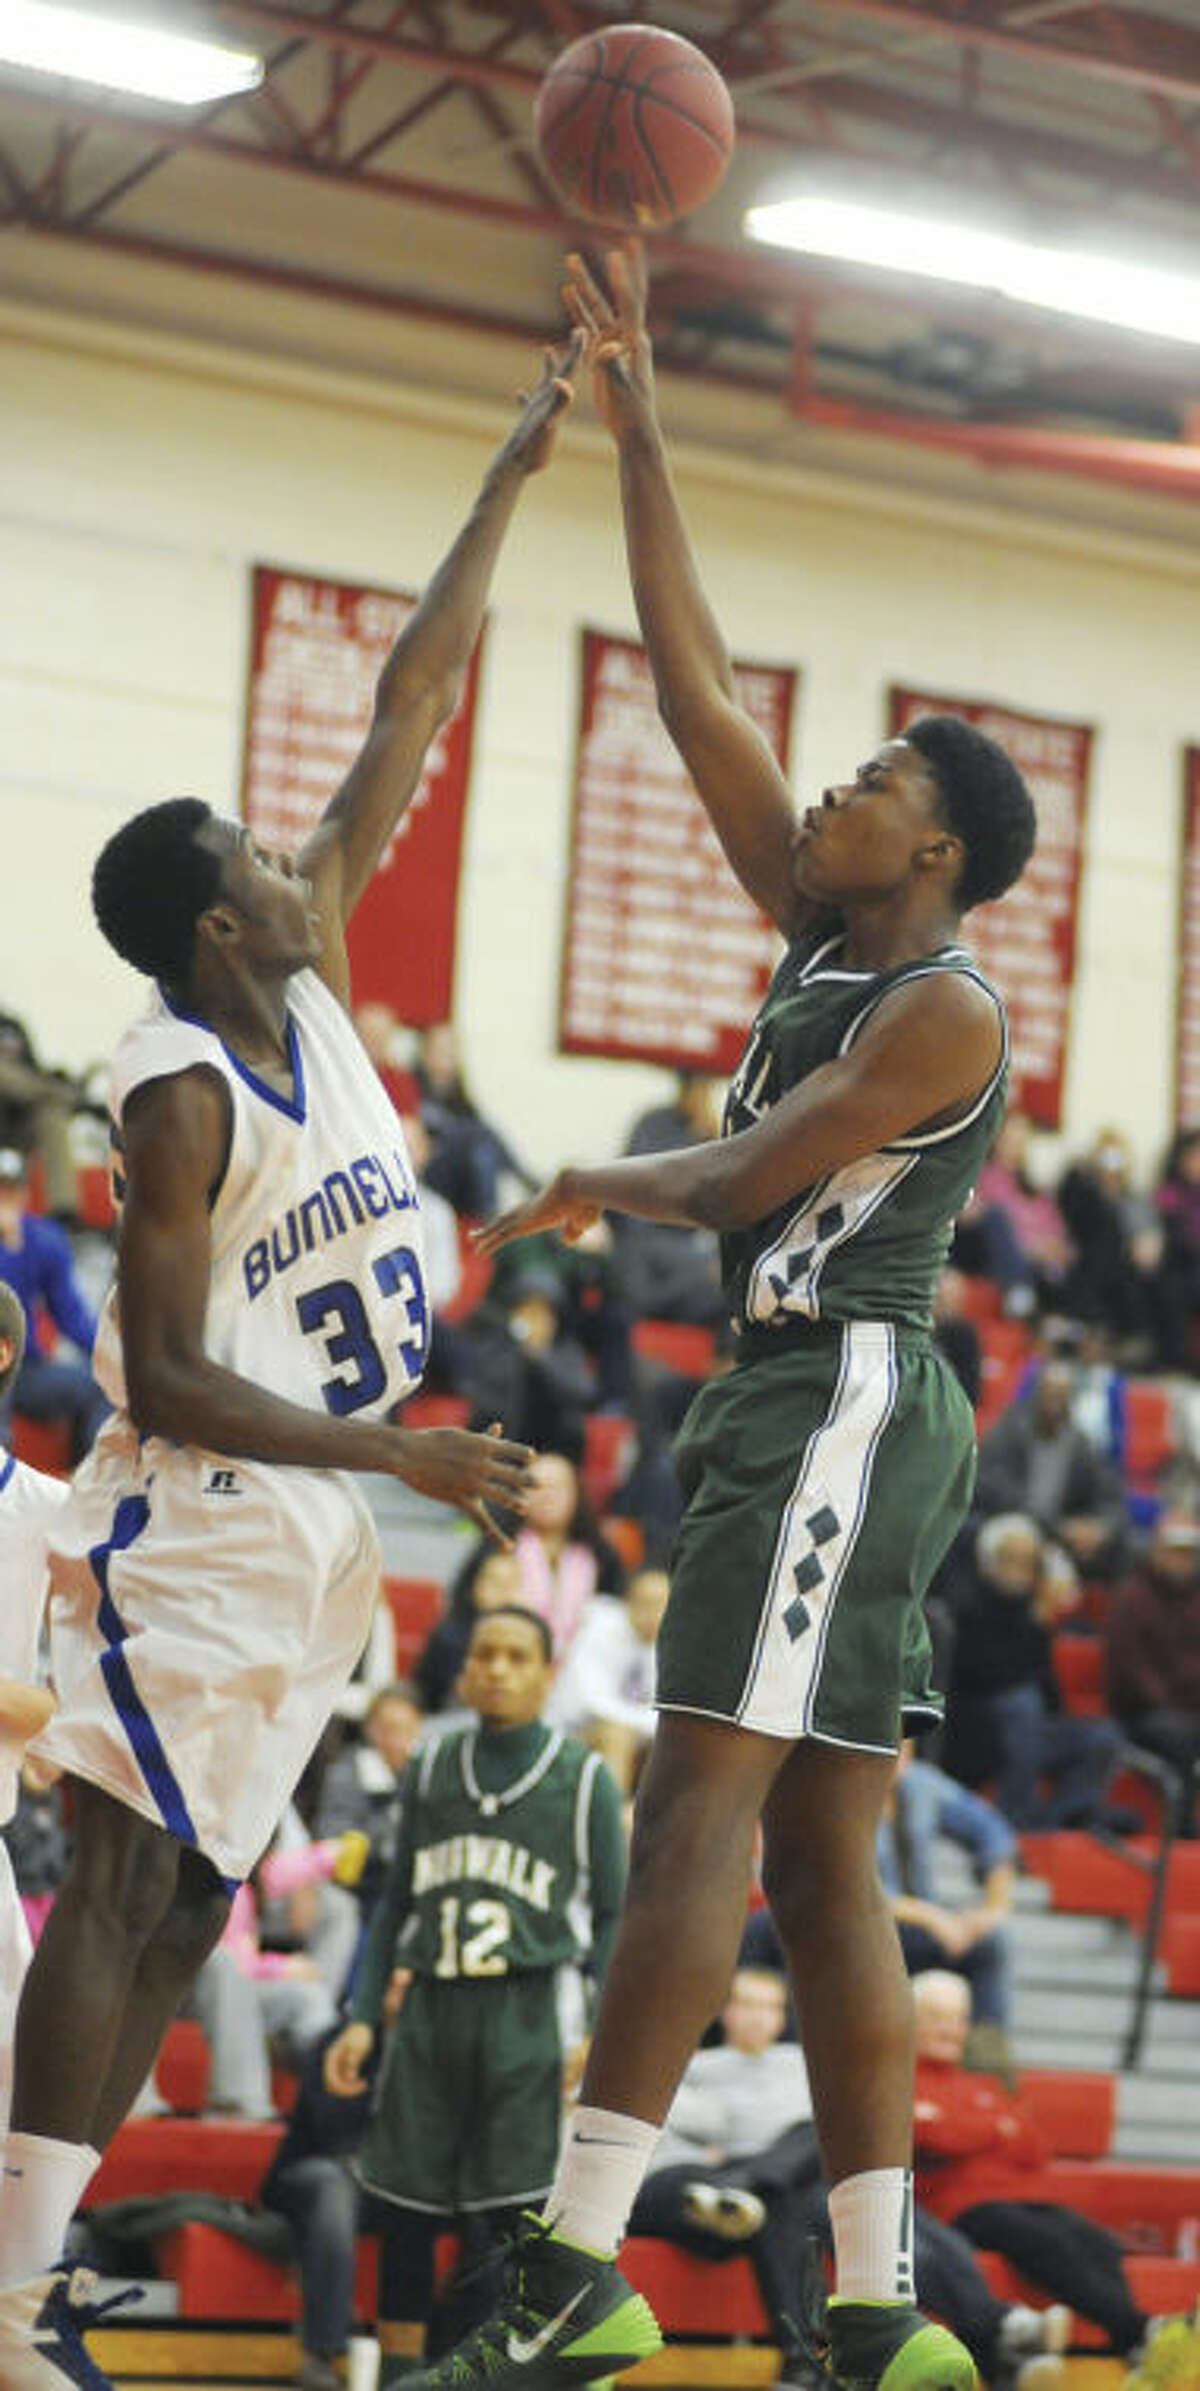 Hour photo/John Nash Norwalk's Steven Enoch puts up a soft jumper over the defense of Bunnell's Romklyns Joseph during Monday's championship game of the Masuk Holiday Tournament.